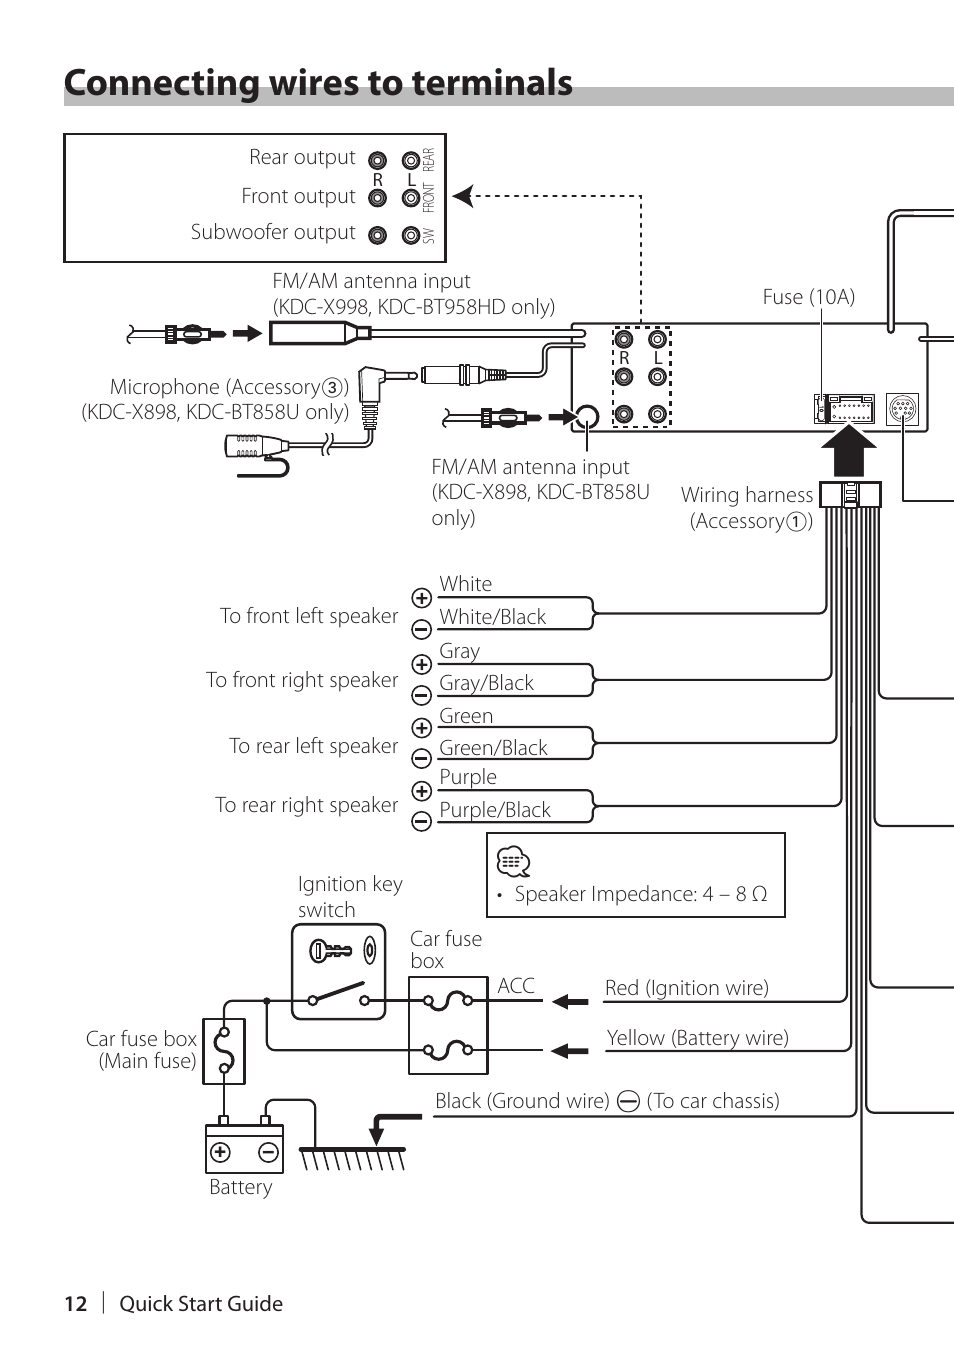 kenwood kdc mp205 car stereo wiring diagrams kenwood kenwood wiring diagram colors kenworth wiring diagrams t680 [ 954 x 1345 Pixel ]